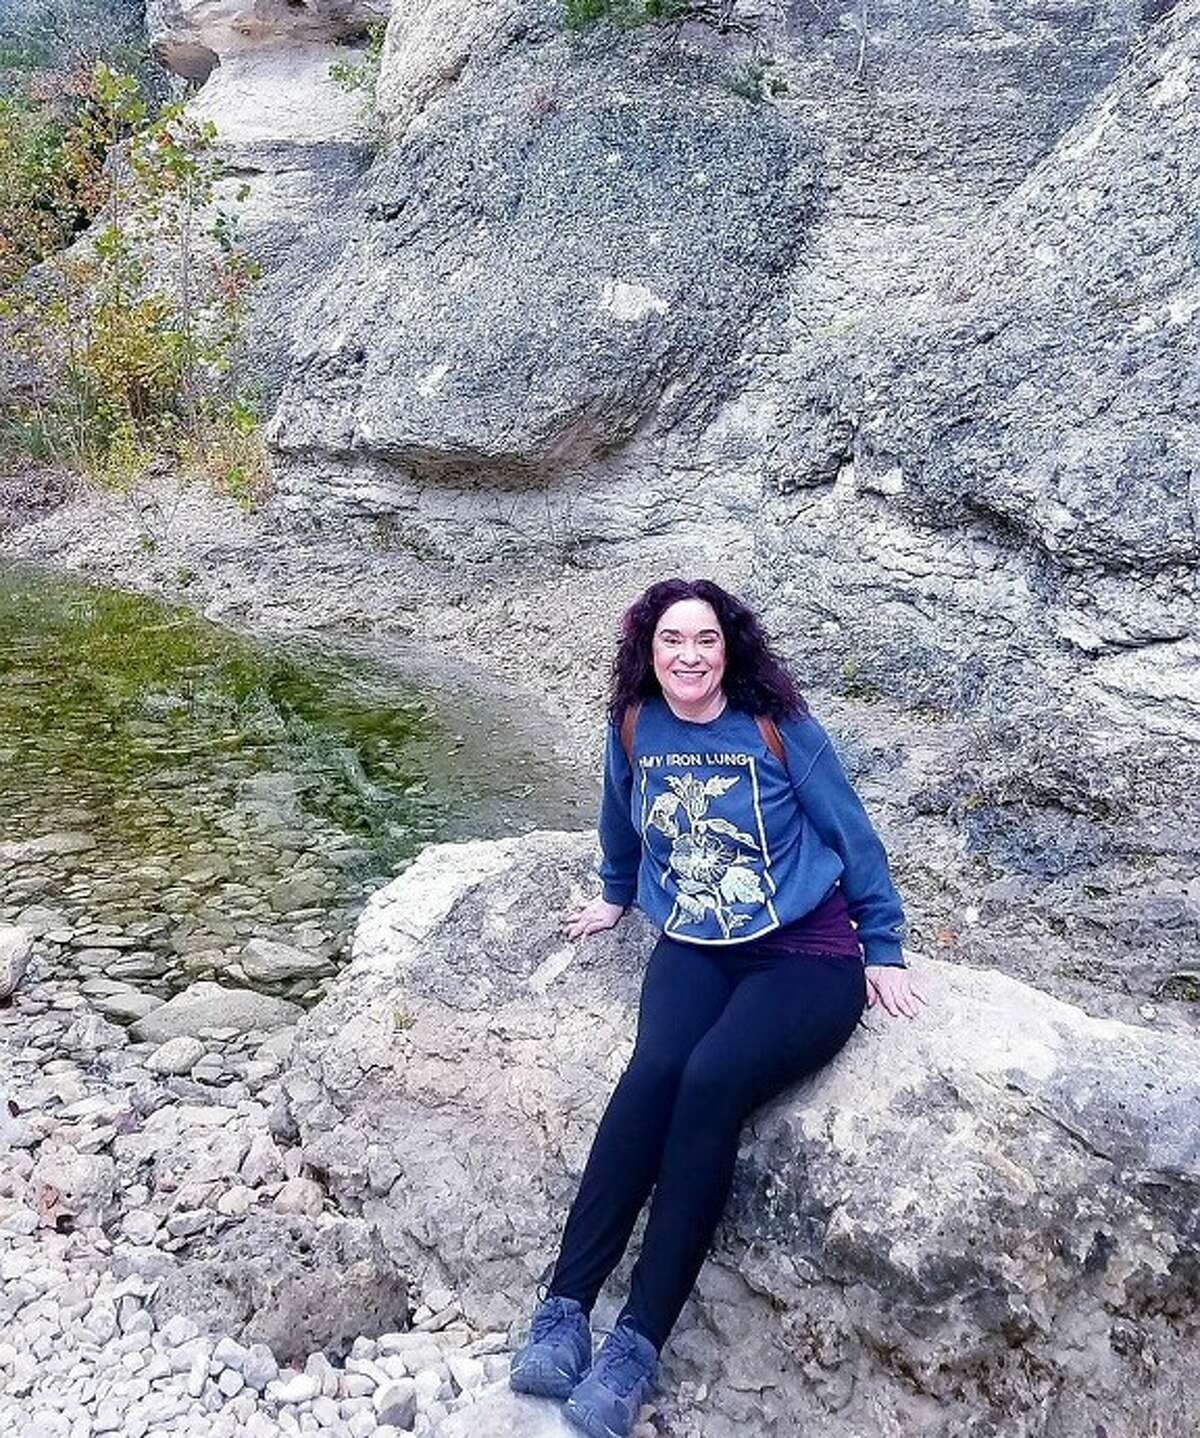 San Antonio woman explains how hiking helped her heal from a life-threatening journey she went through in 2018.